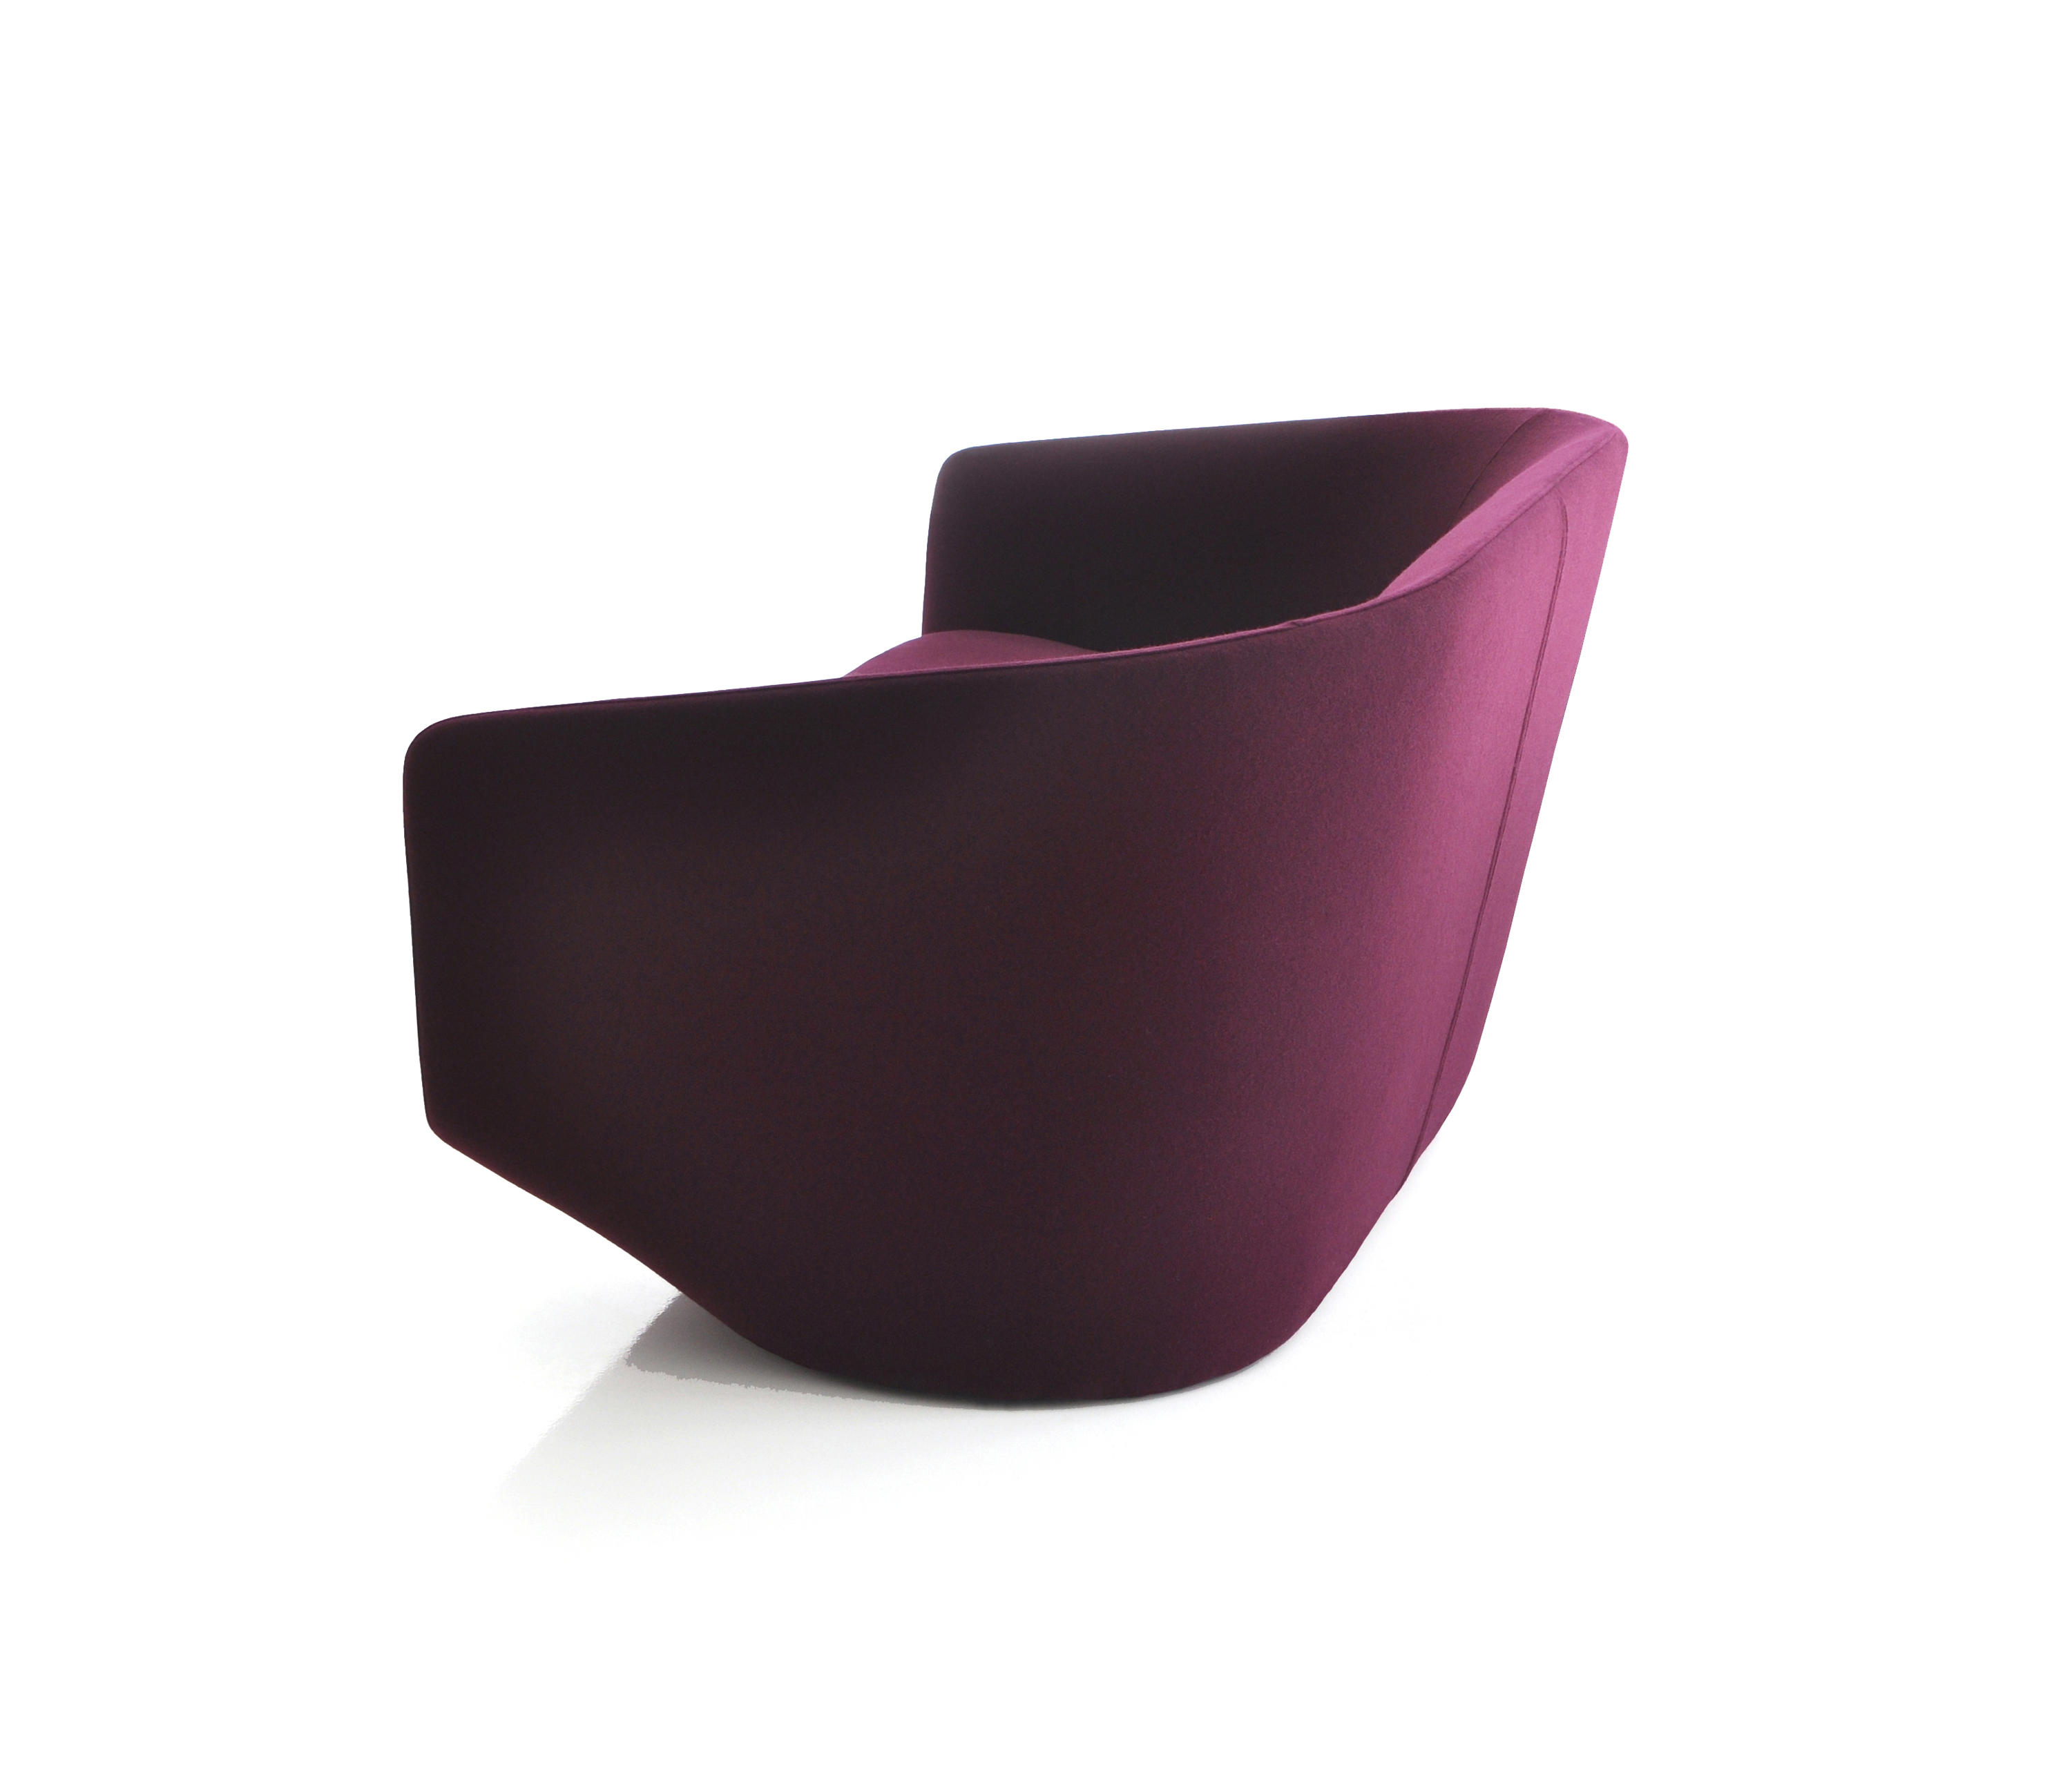 U SOFA - Lounge sofas from Bensen | Architonic